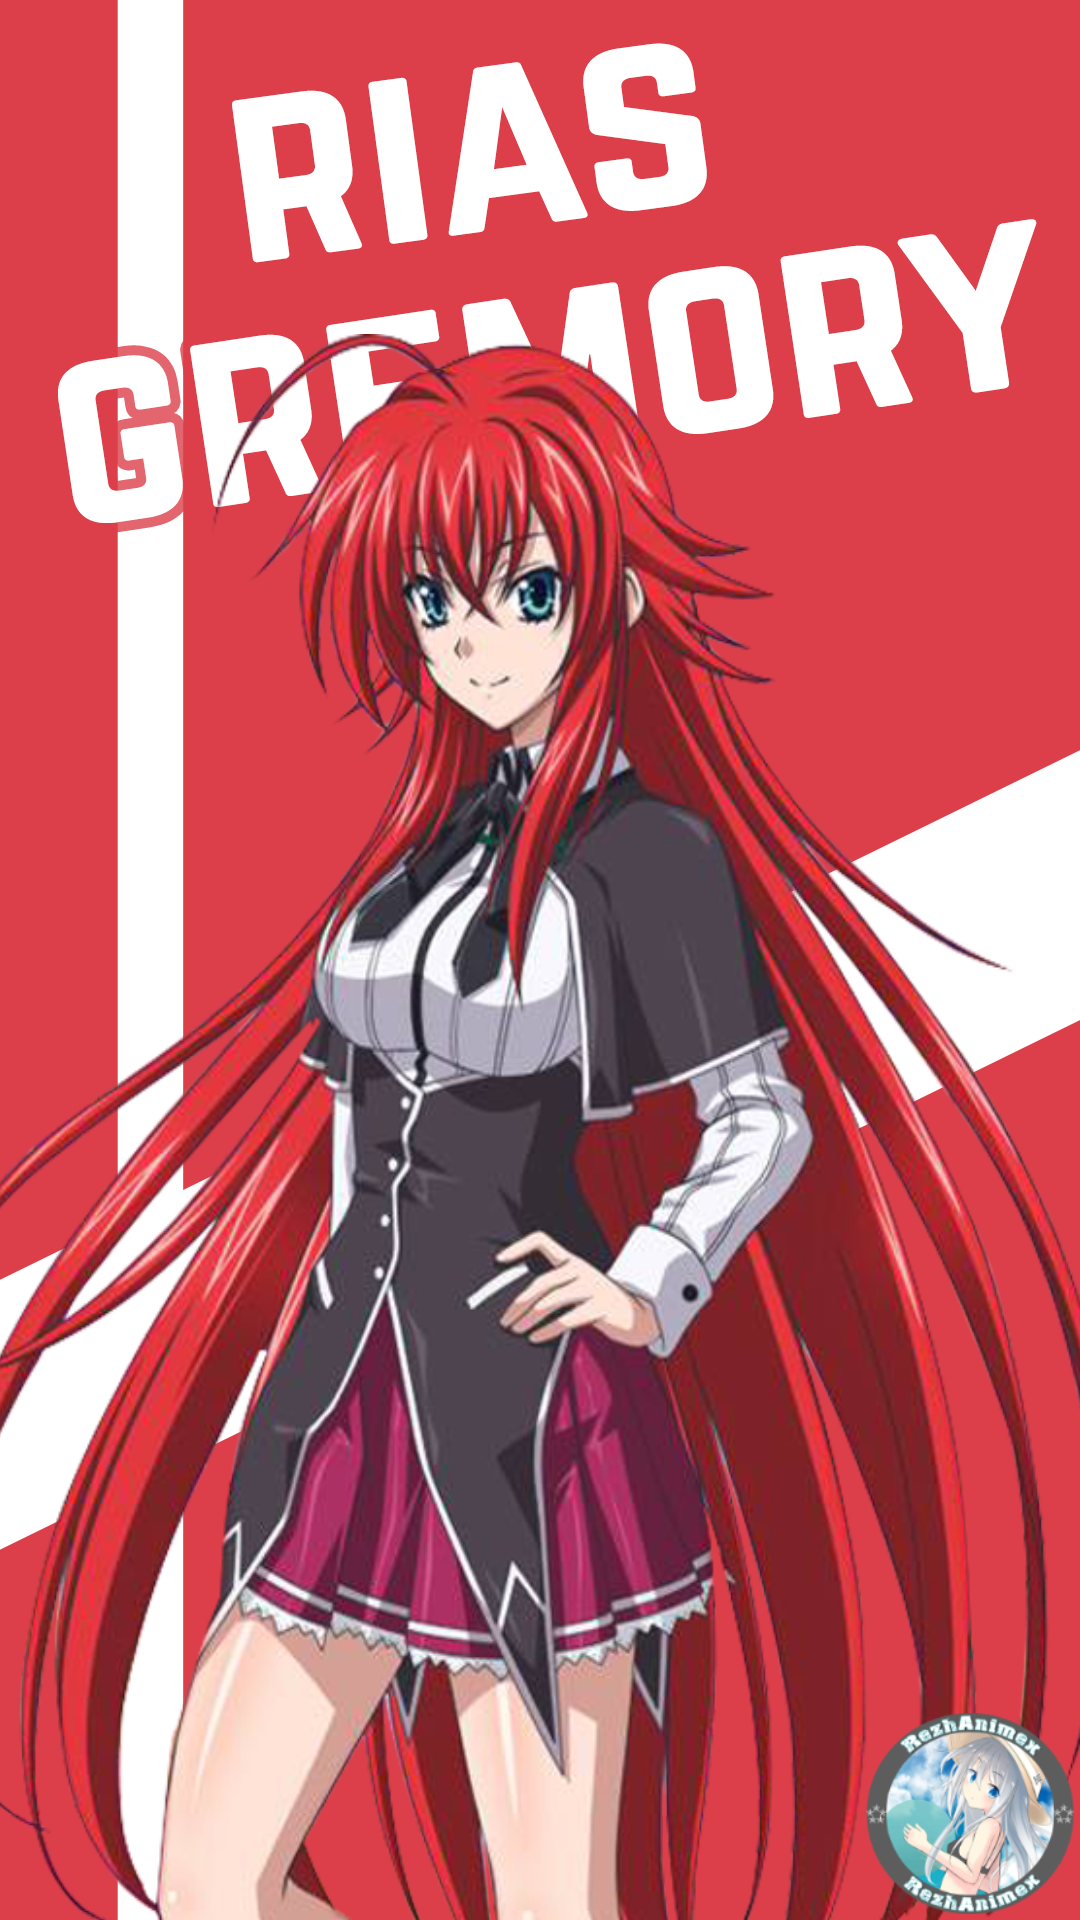 About Picture Character Name Rias Gremory